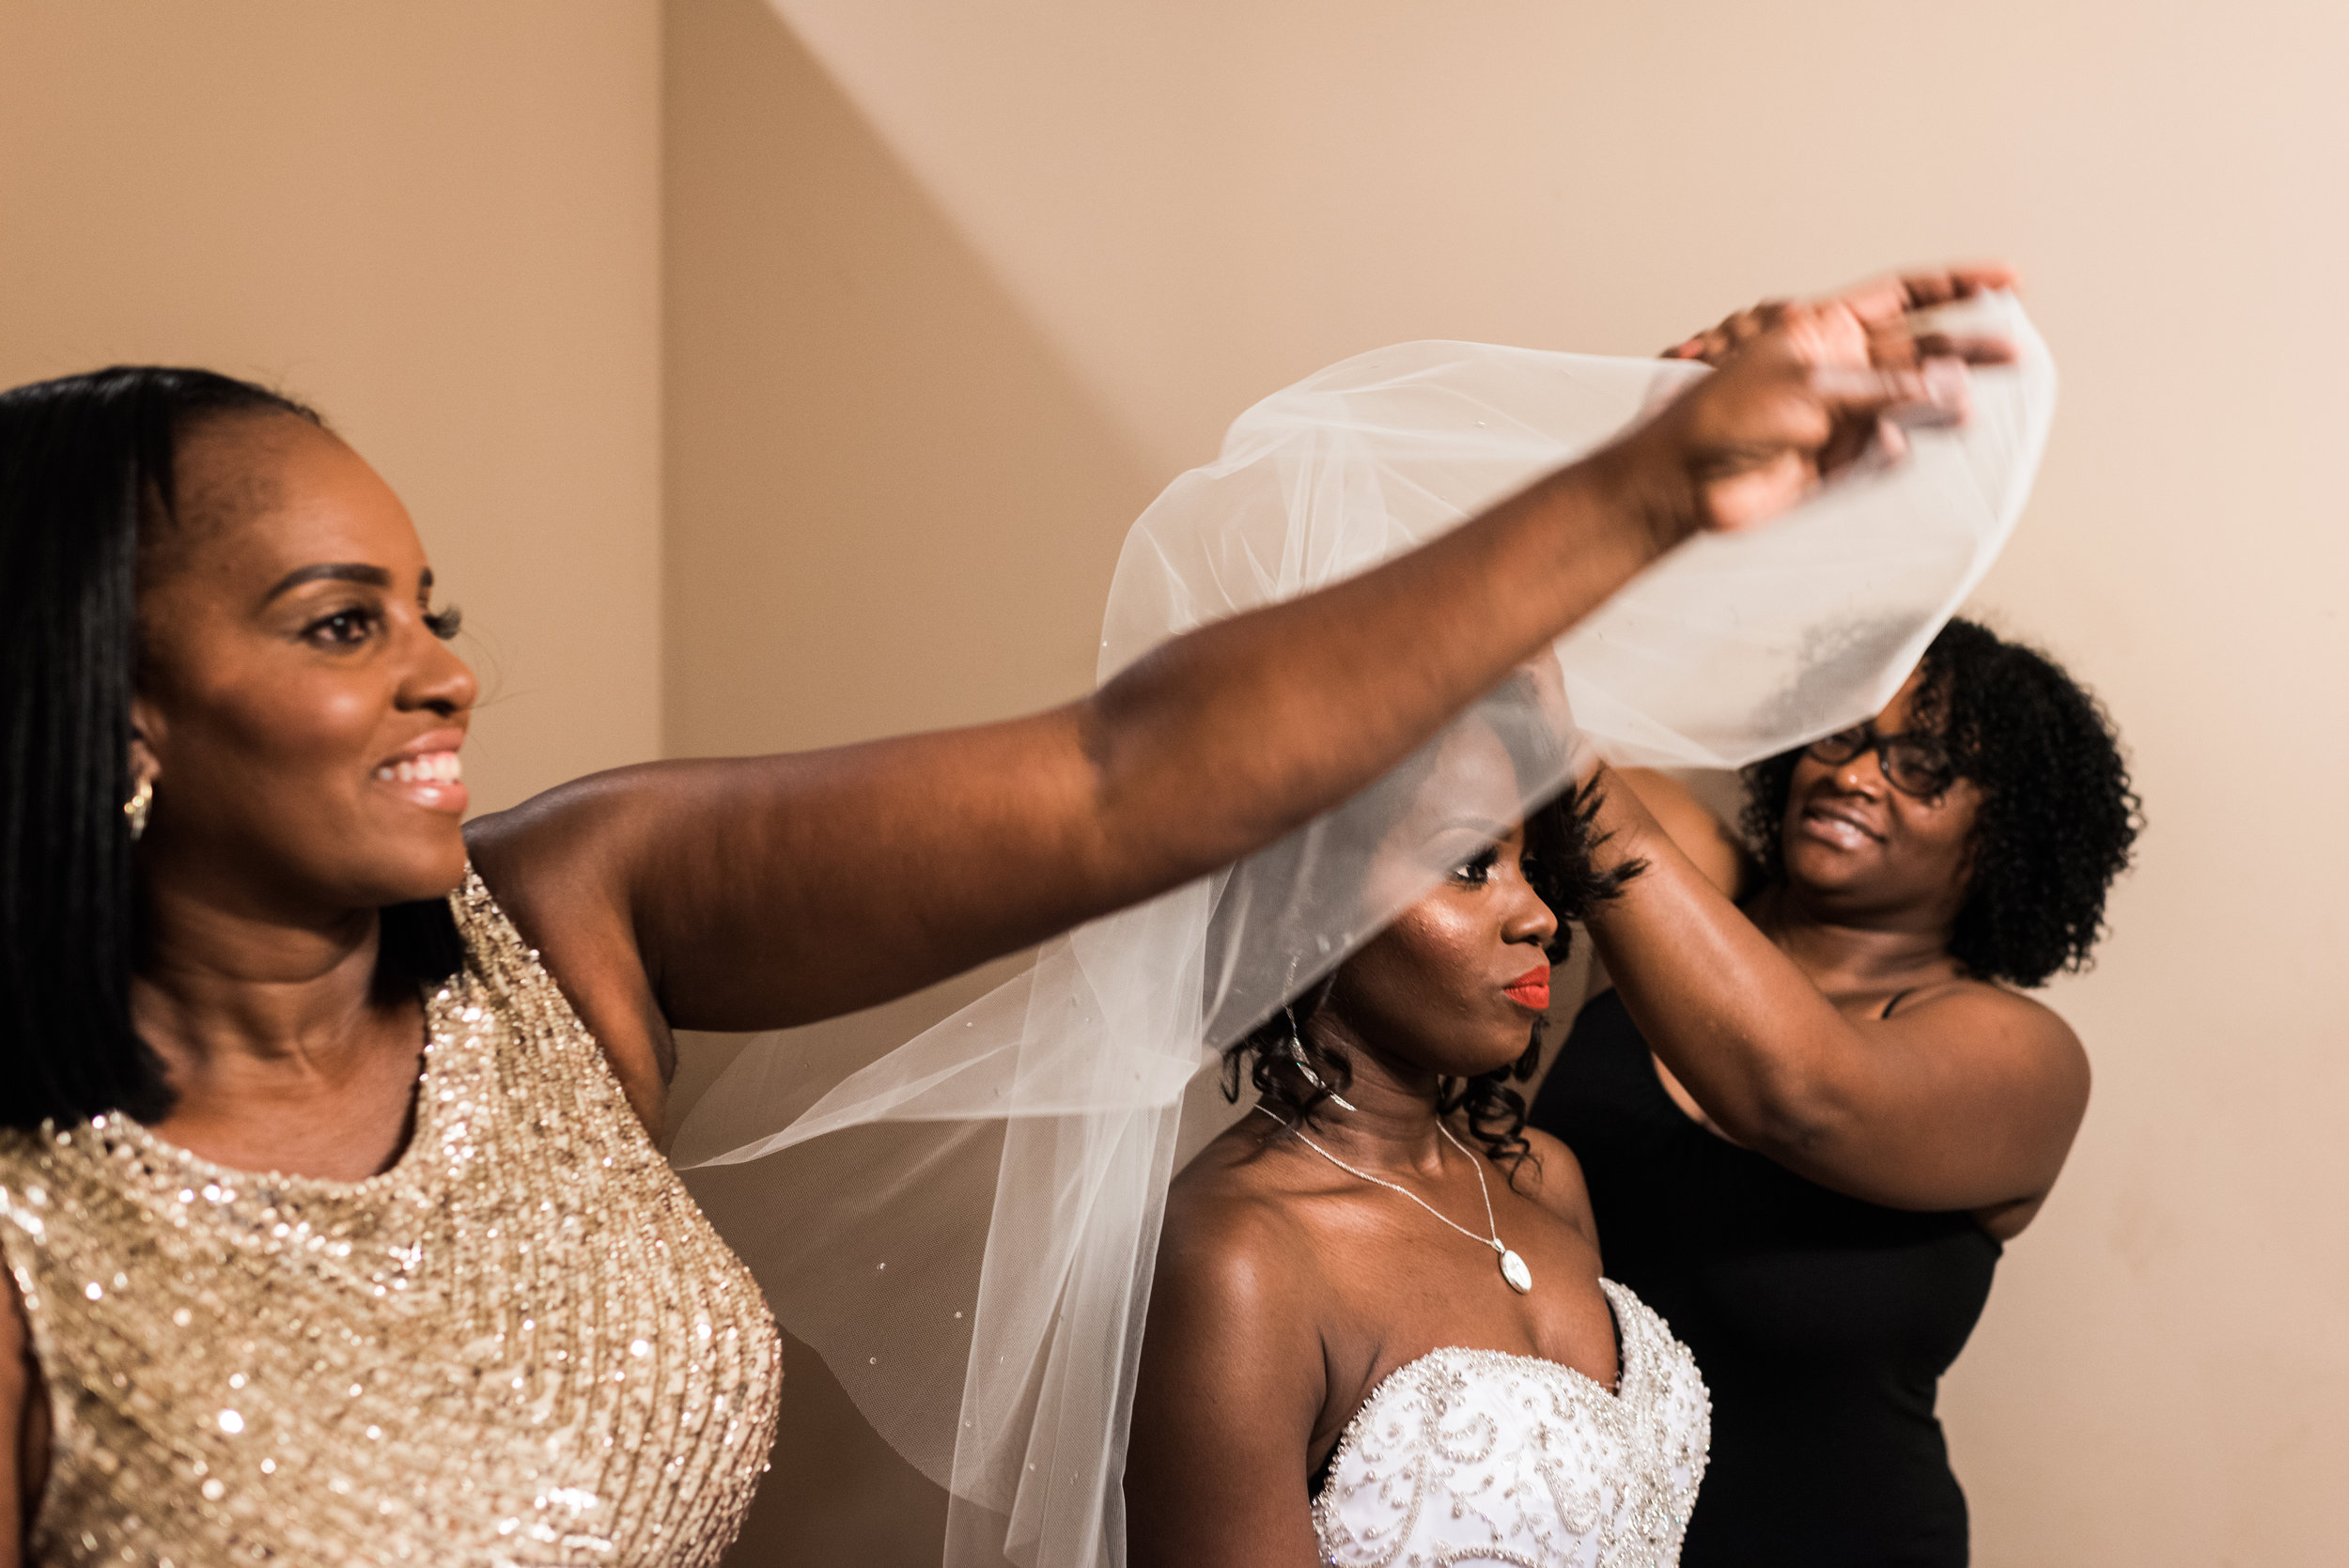 st-louis-wedding-photographer-donavyn-and-tanisha-391.jpg